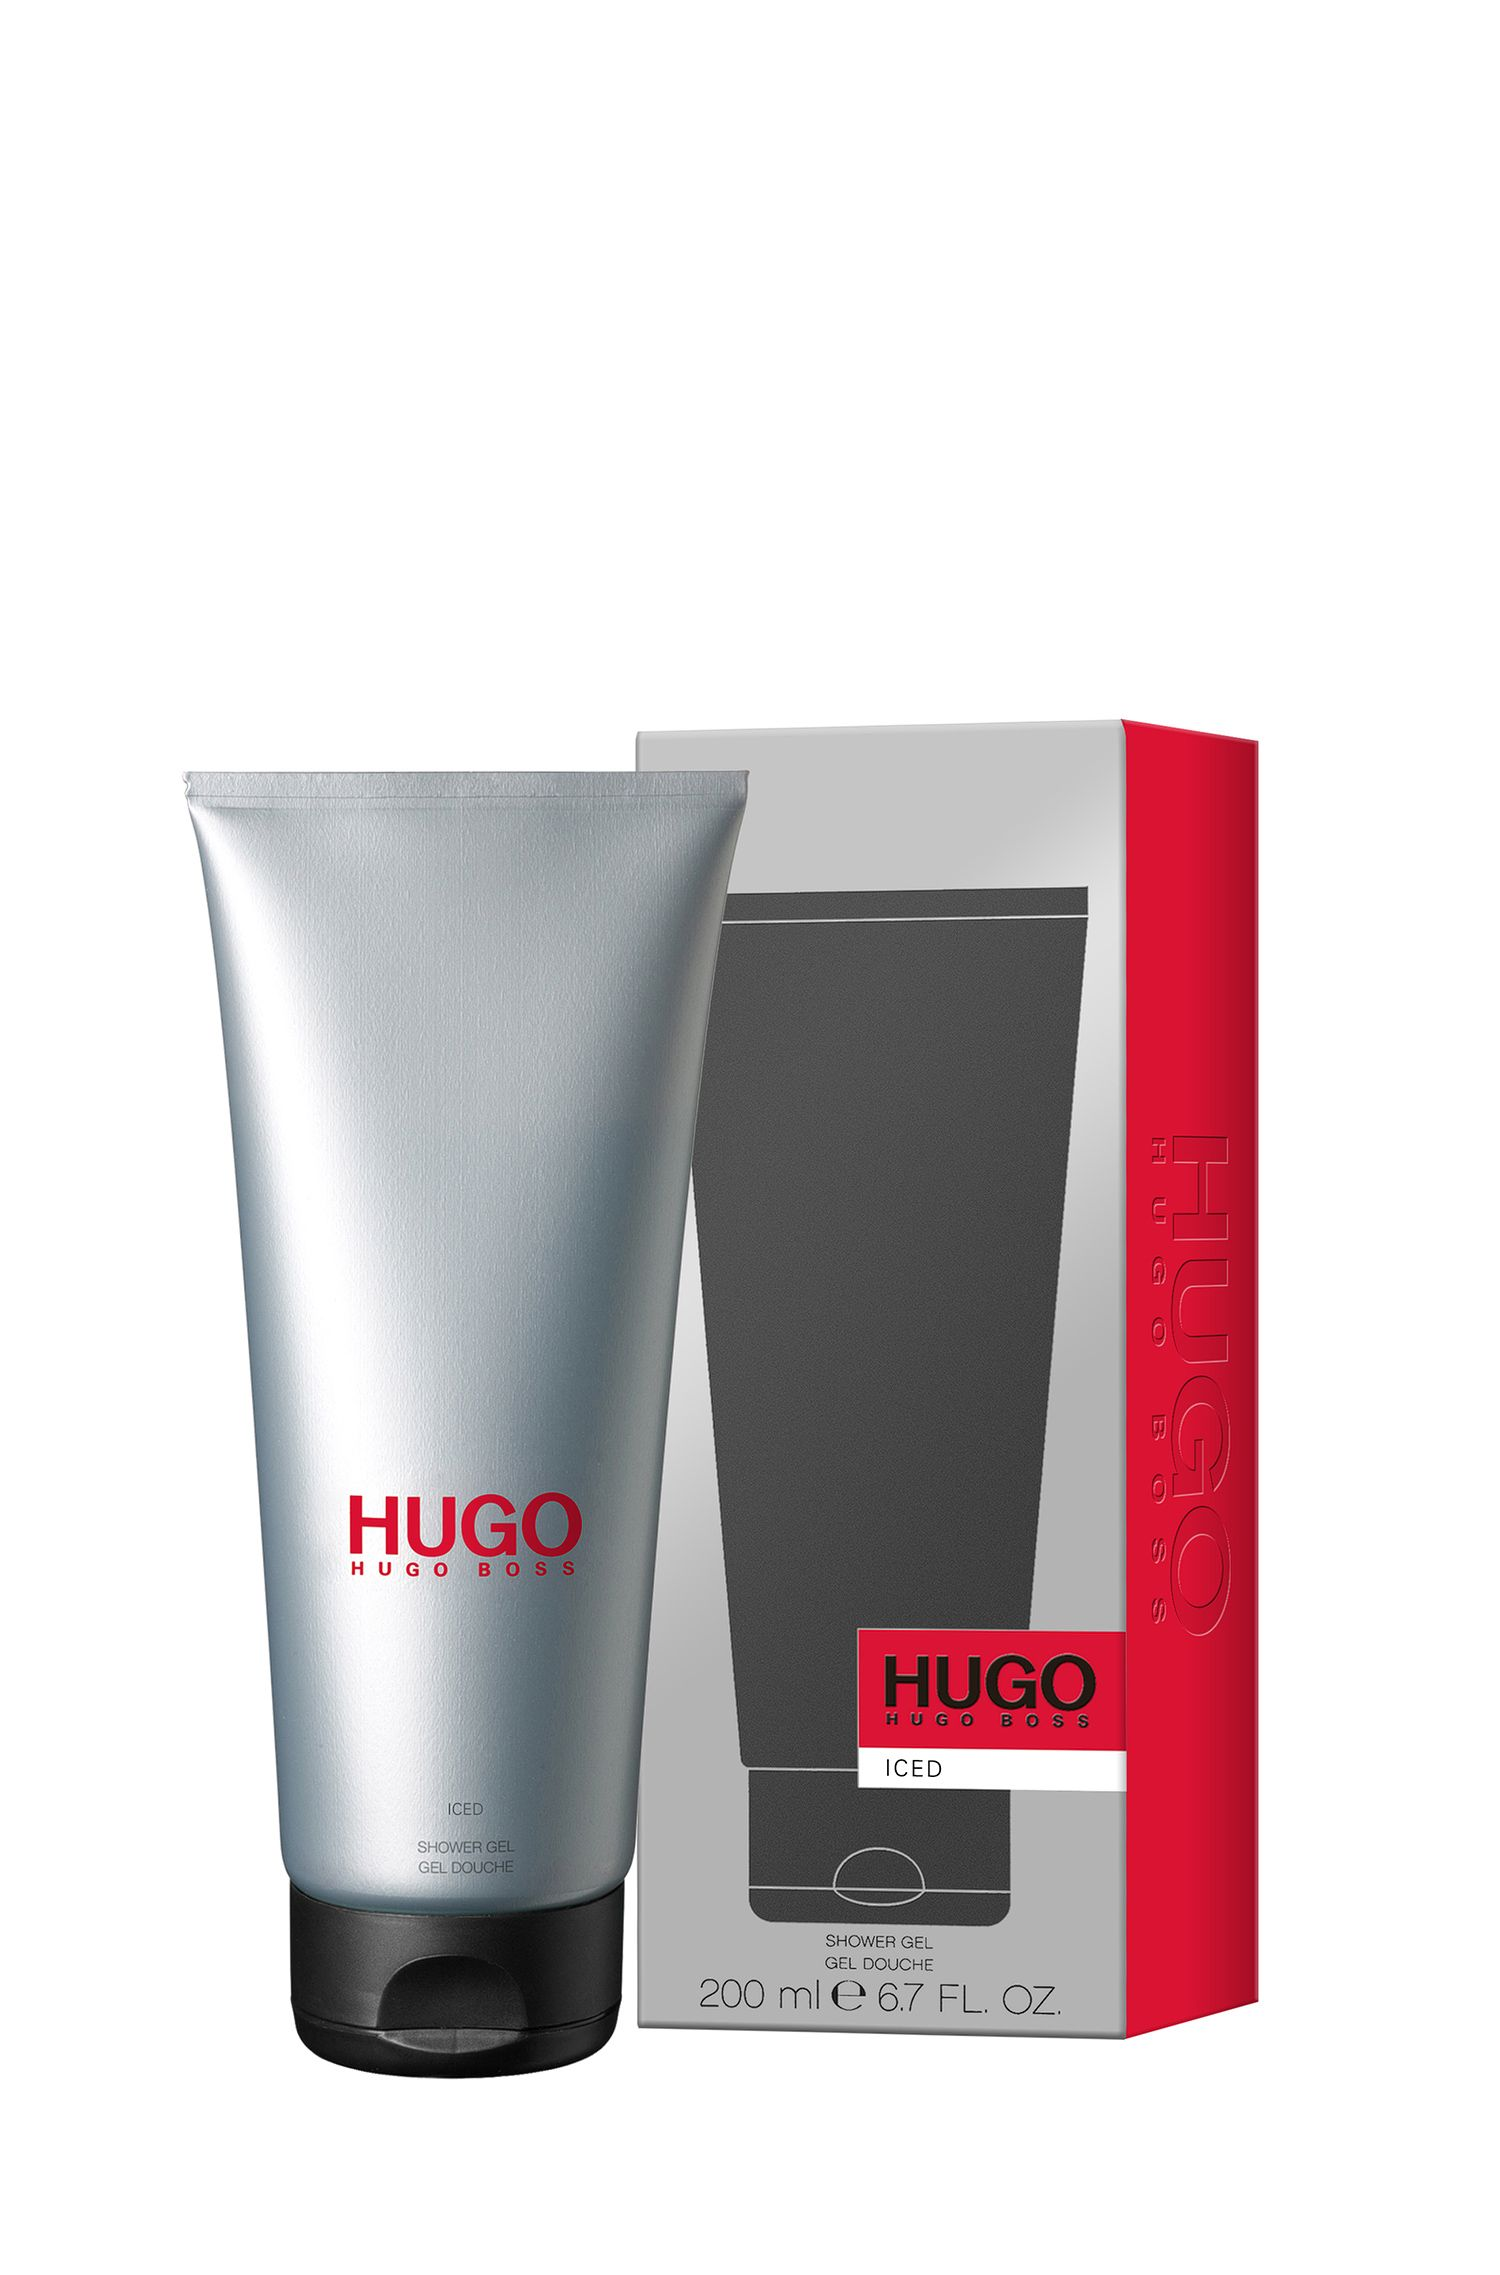 'HUGO Iced' Shower Gel